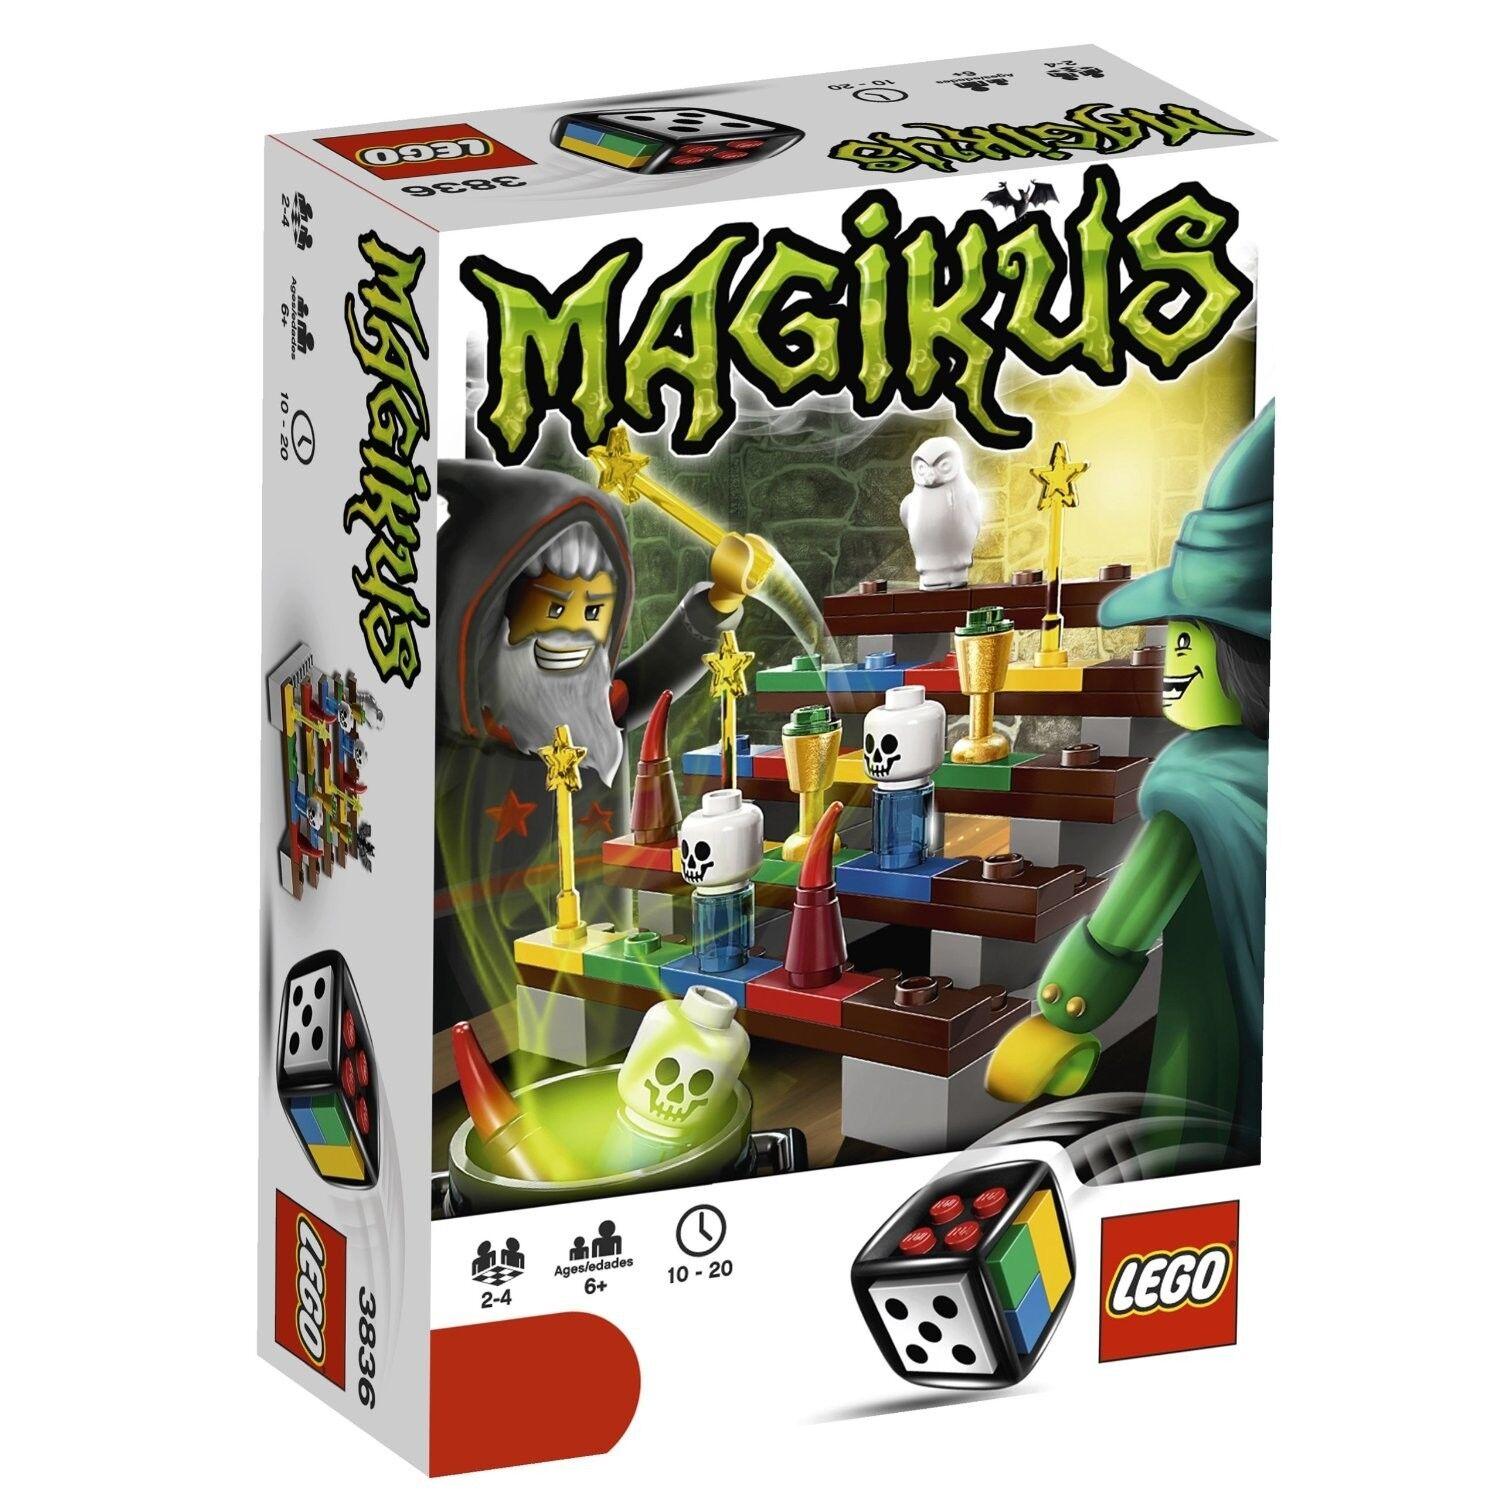 LEGO Magikus 3836 Lego Game 109 Pieces Awesome Awesome Awesome 2 to 4 Players Age 6+ New HTF 0ebdcf